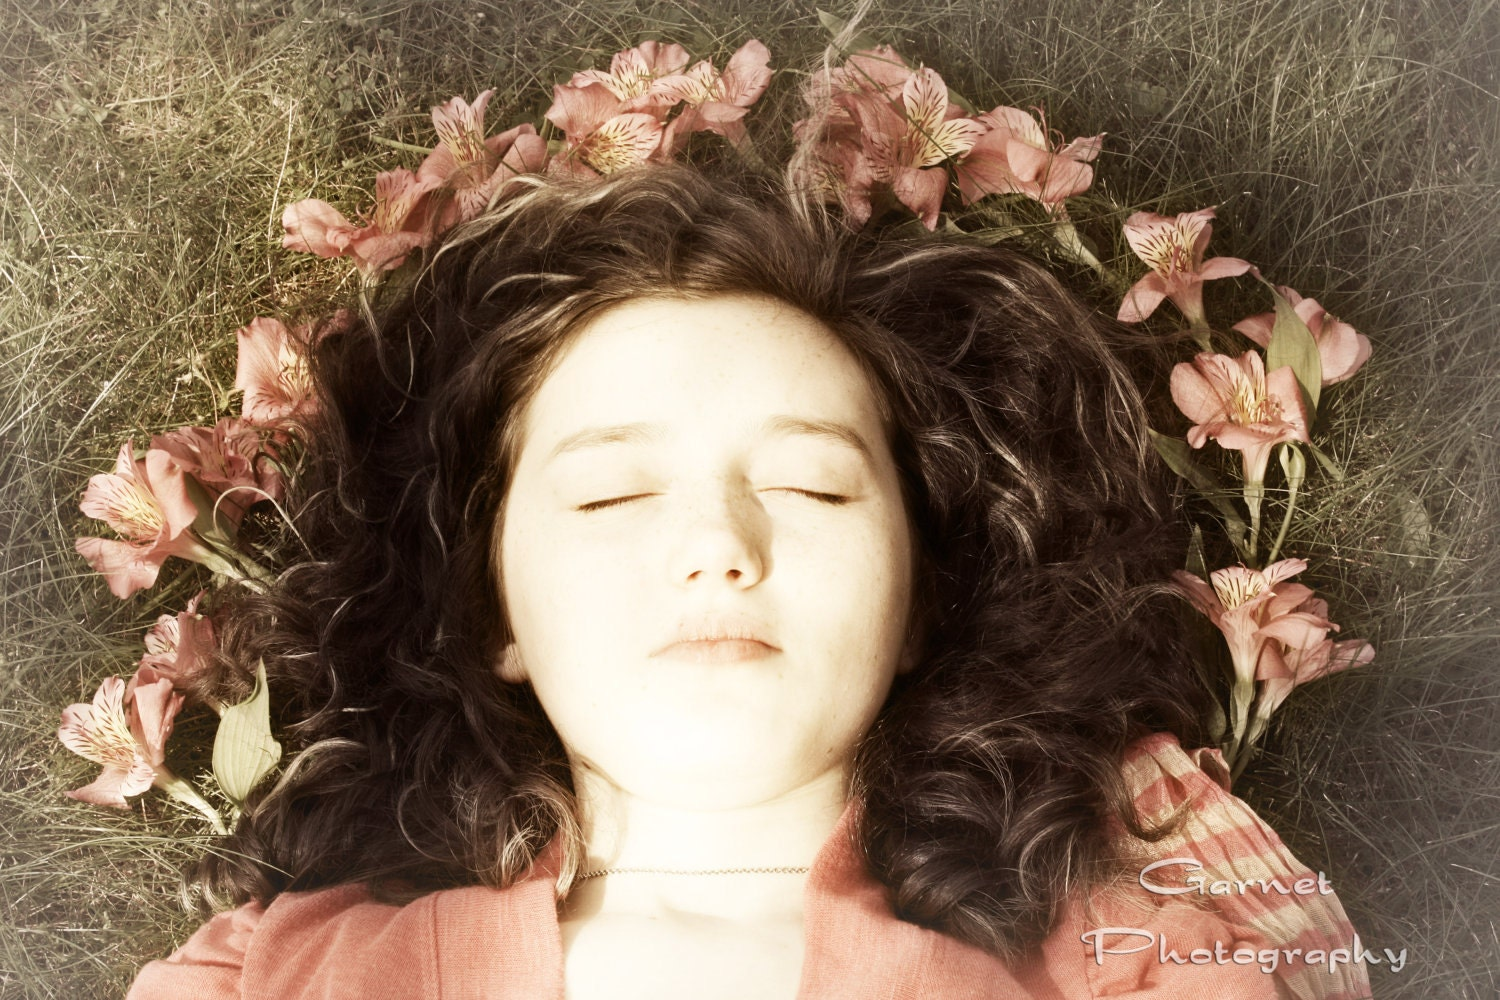 Ethereal Dreams Original Fine Art Portrait Print 5x7 Matte Free Shipping - GarnetPhotography